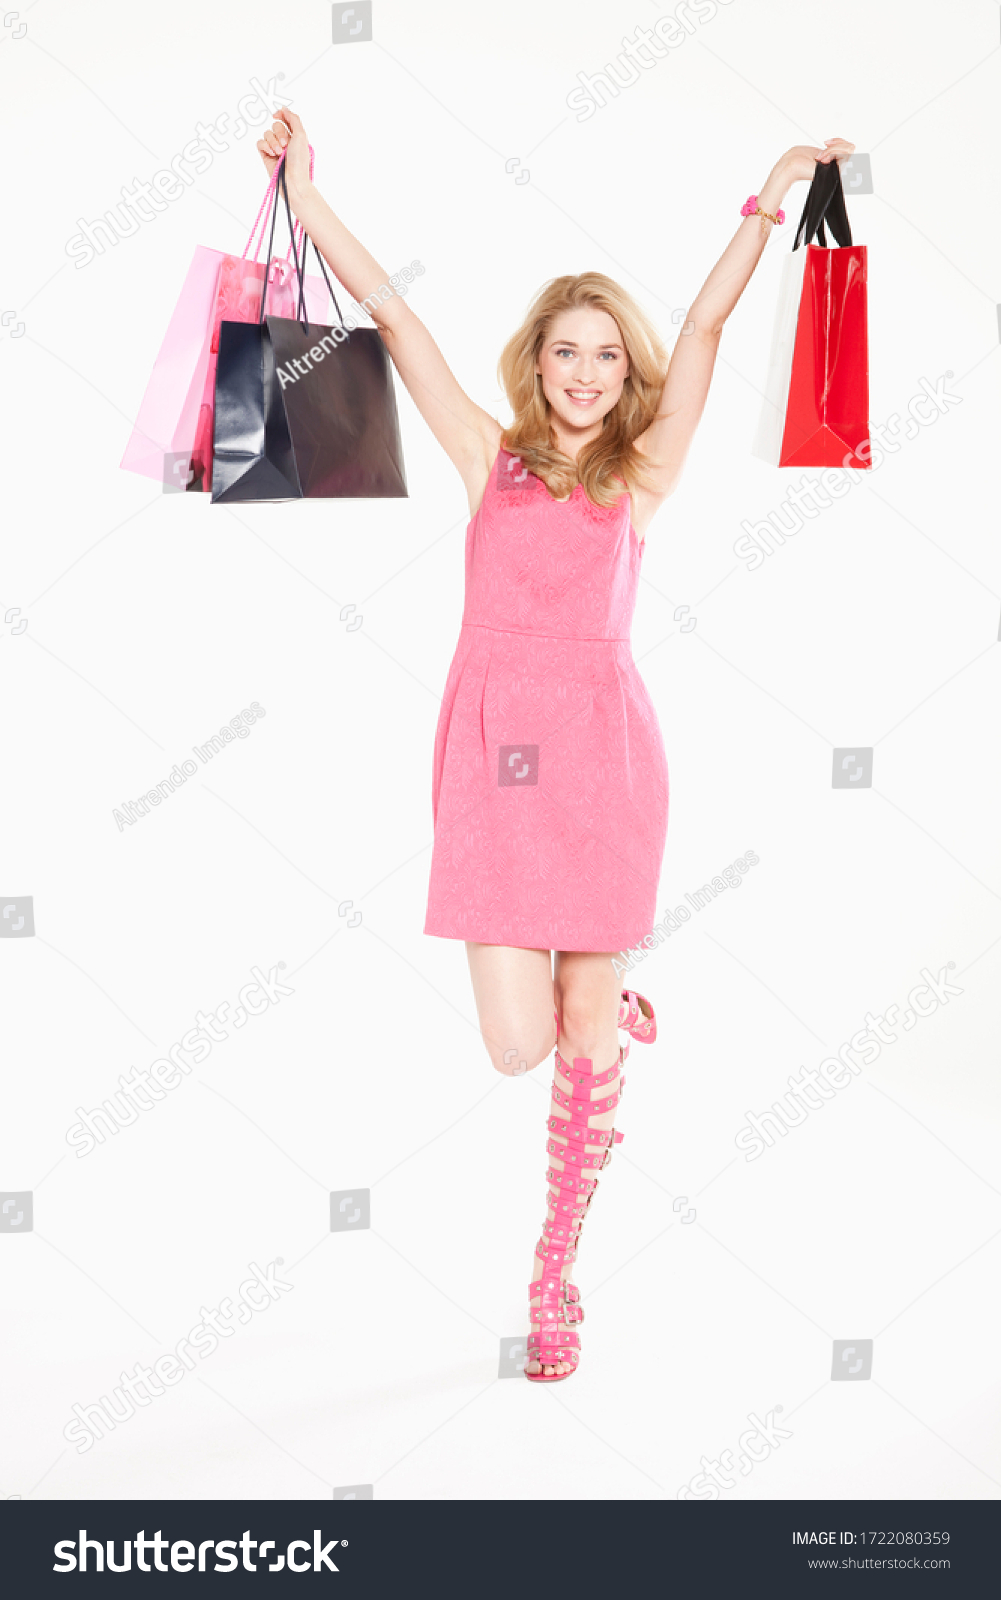 Young woman in pink dress and heels holding shopping bags, portrait #1722080359